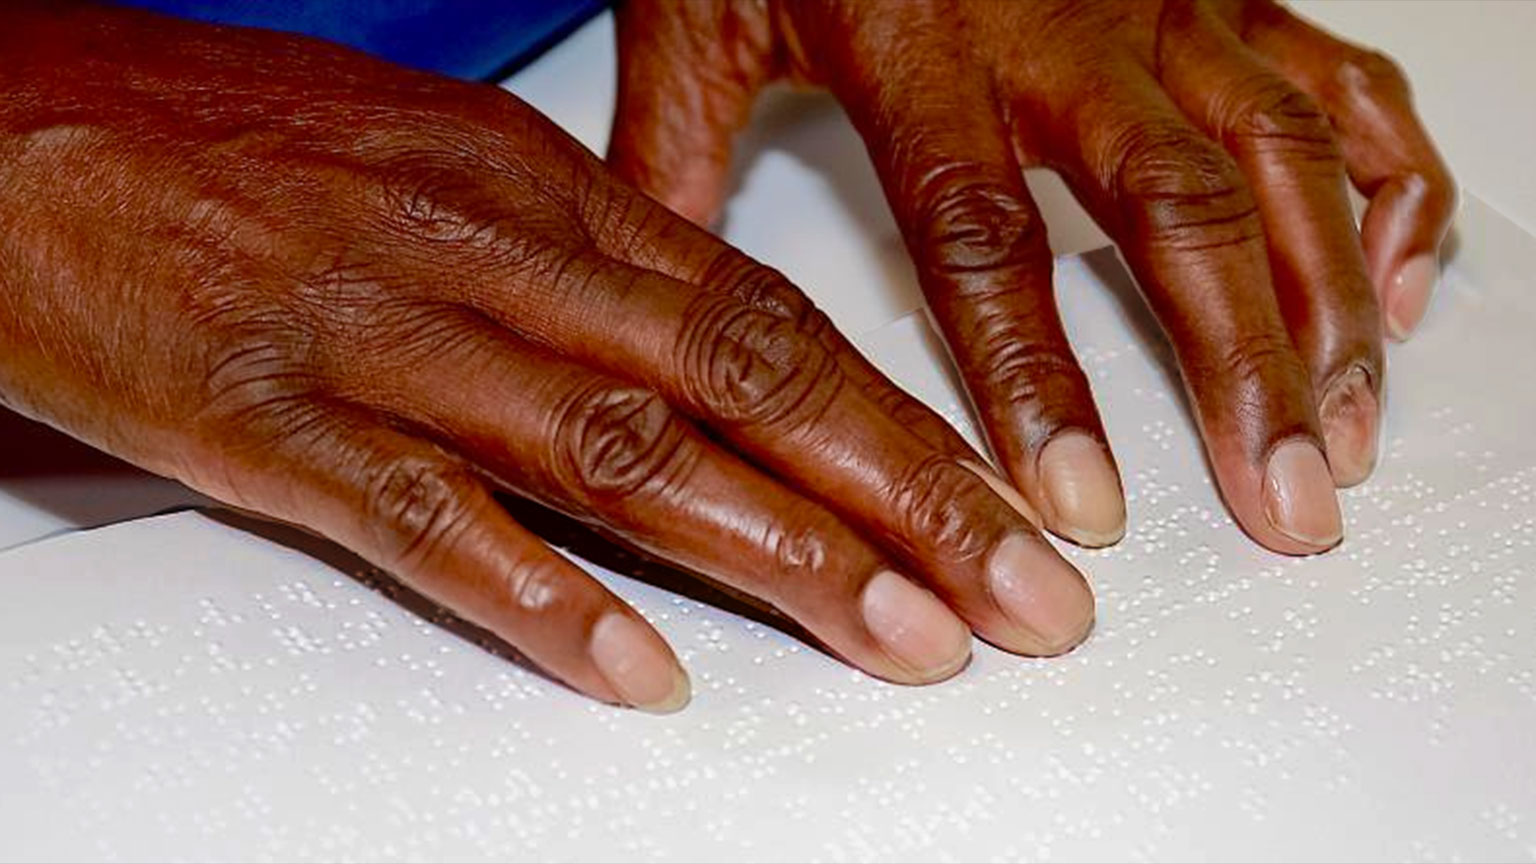 A Black woman's hands are shown reading braille on a page.